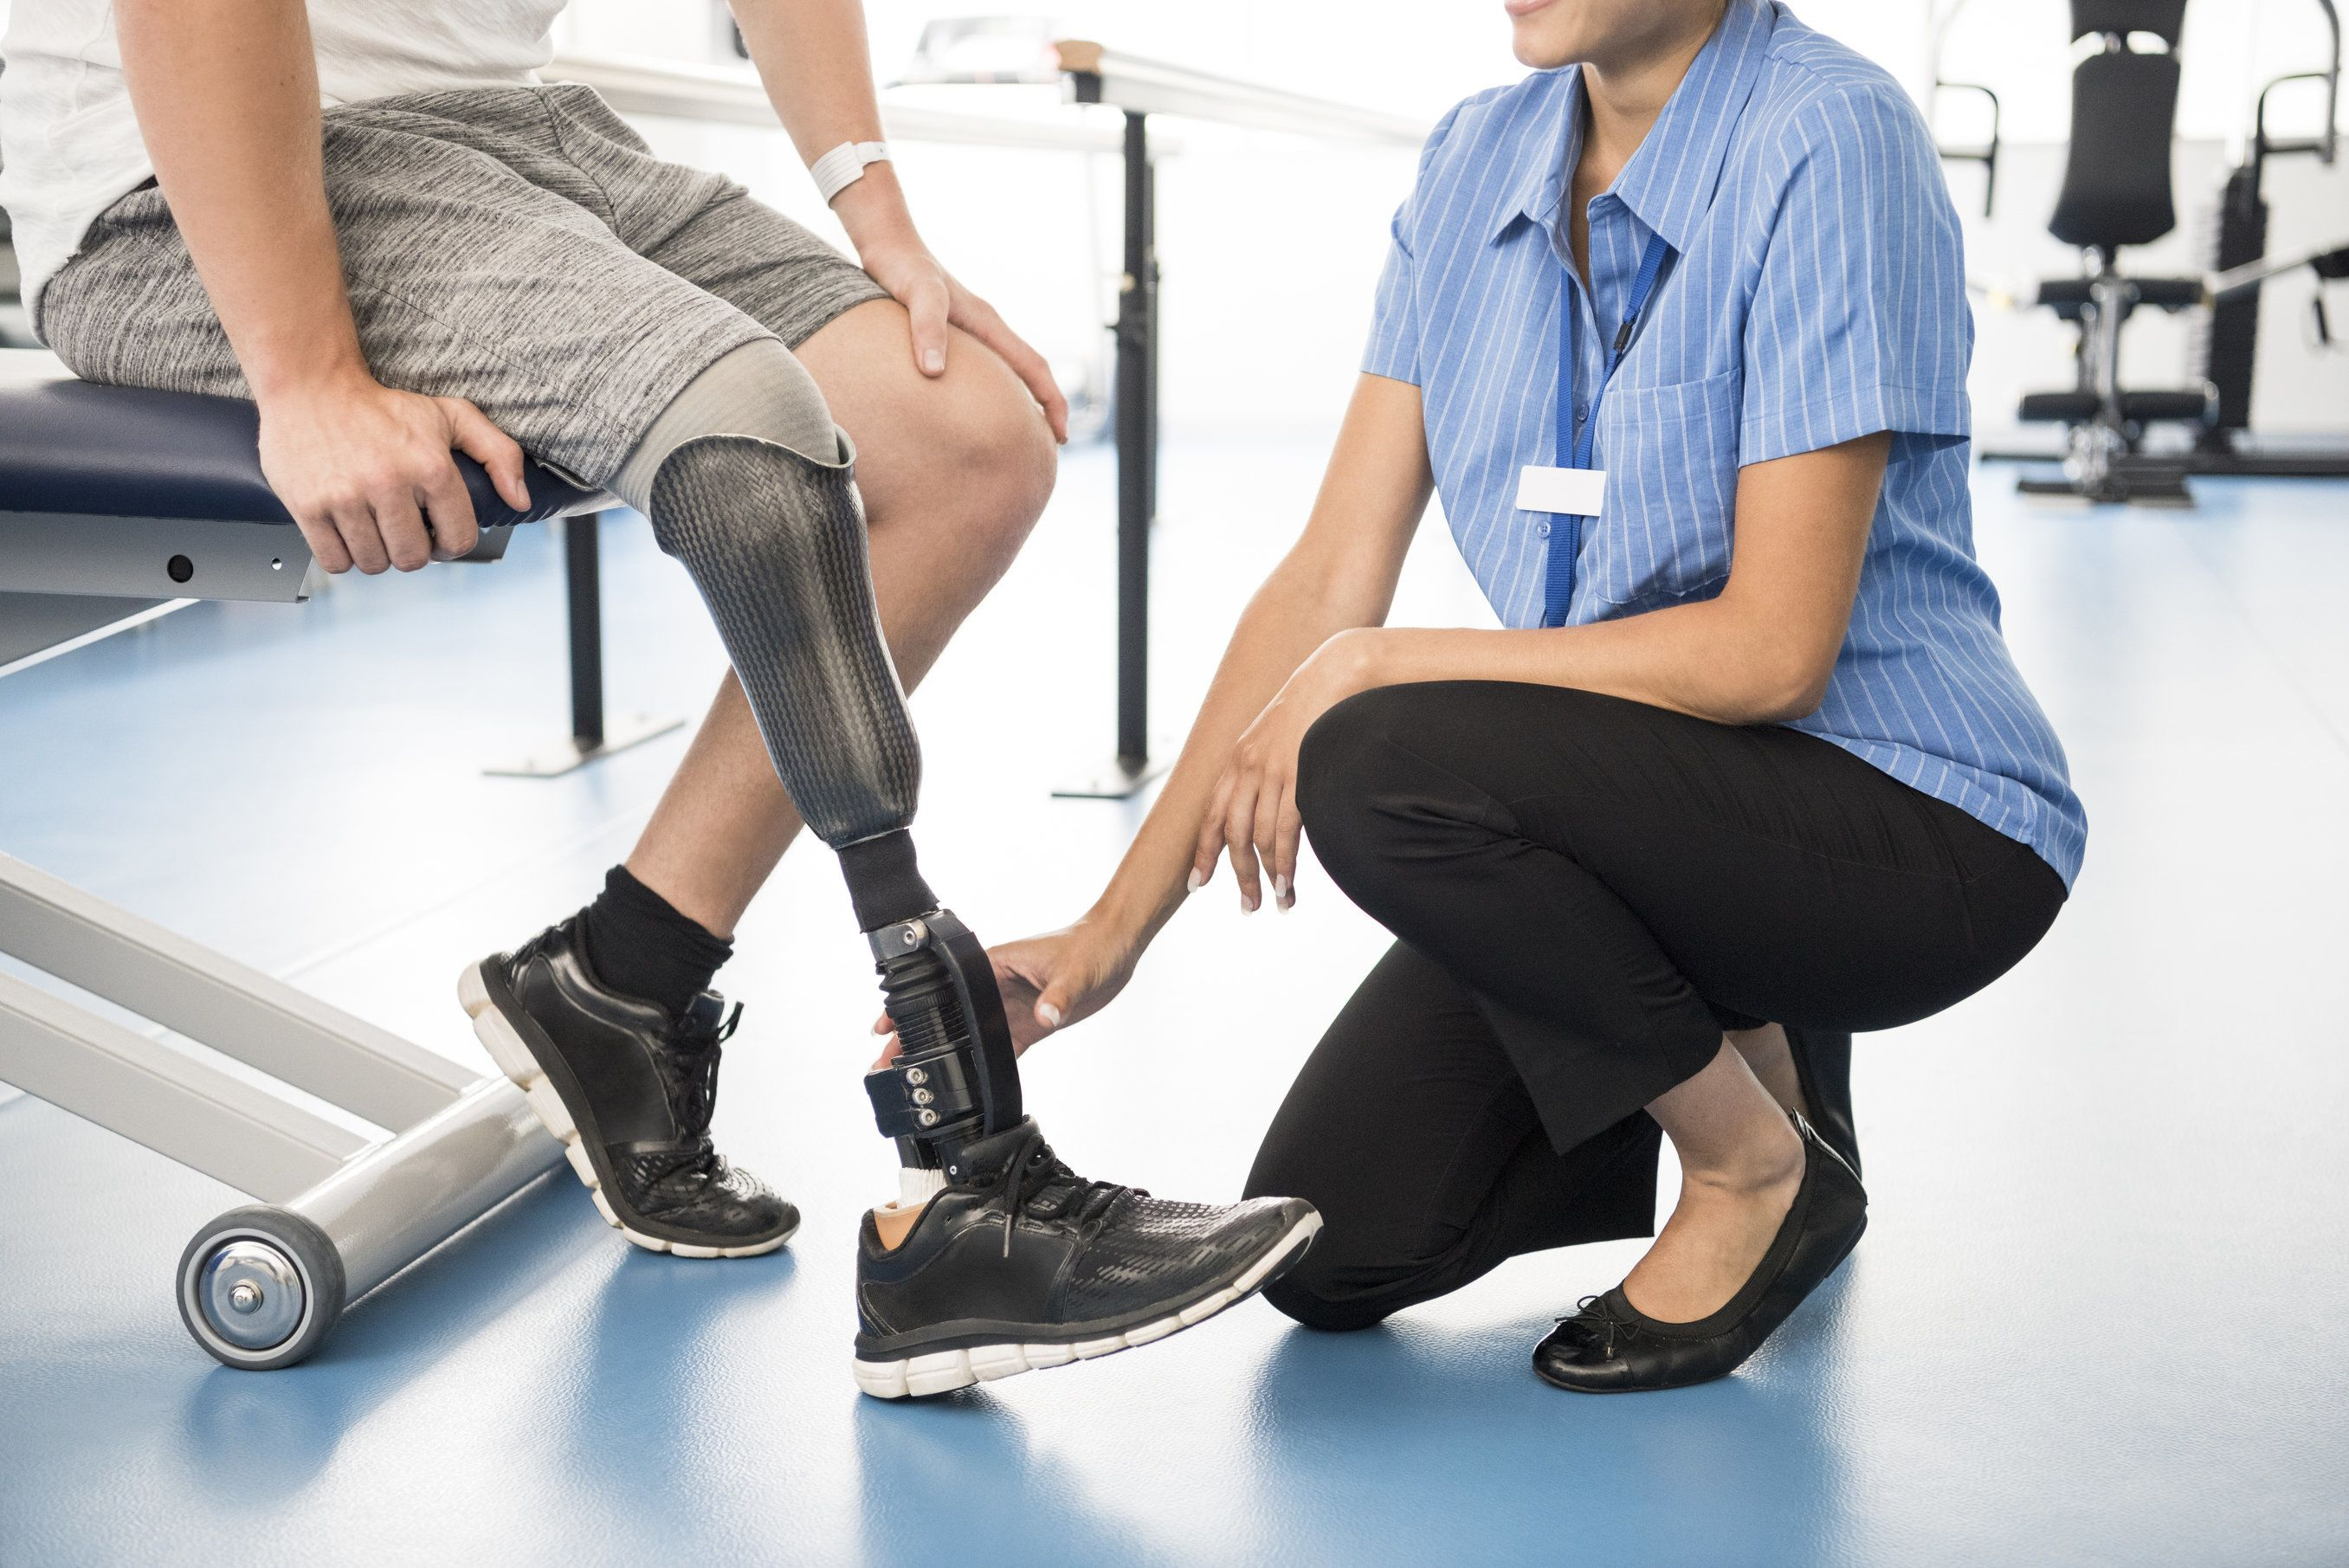 A physical therapist working with a patient with a prosthetic leg